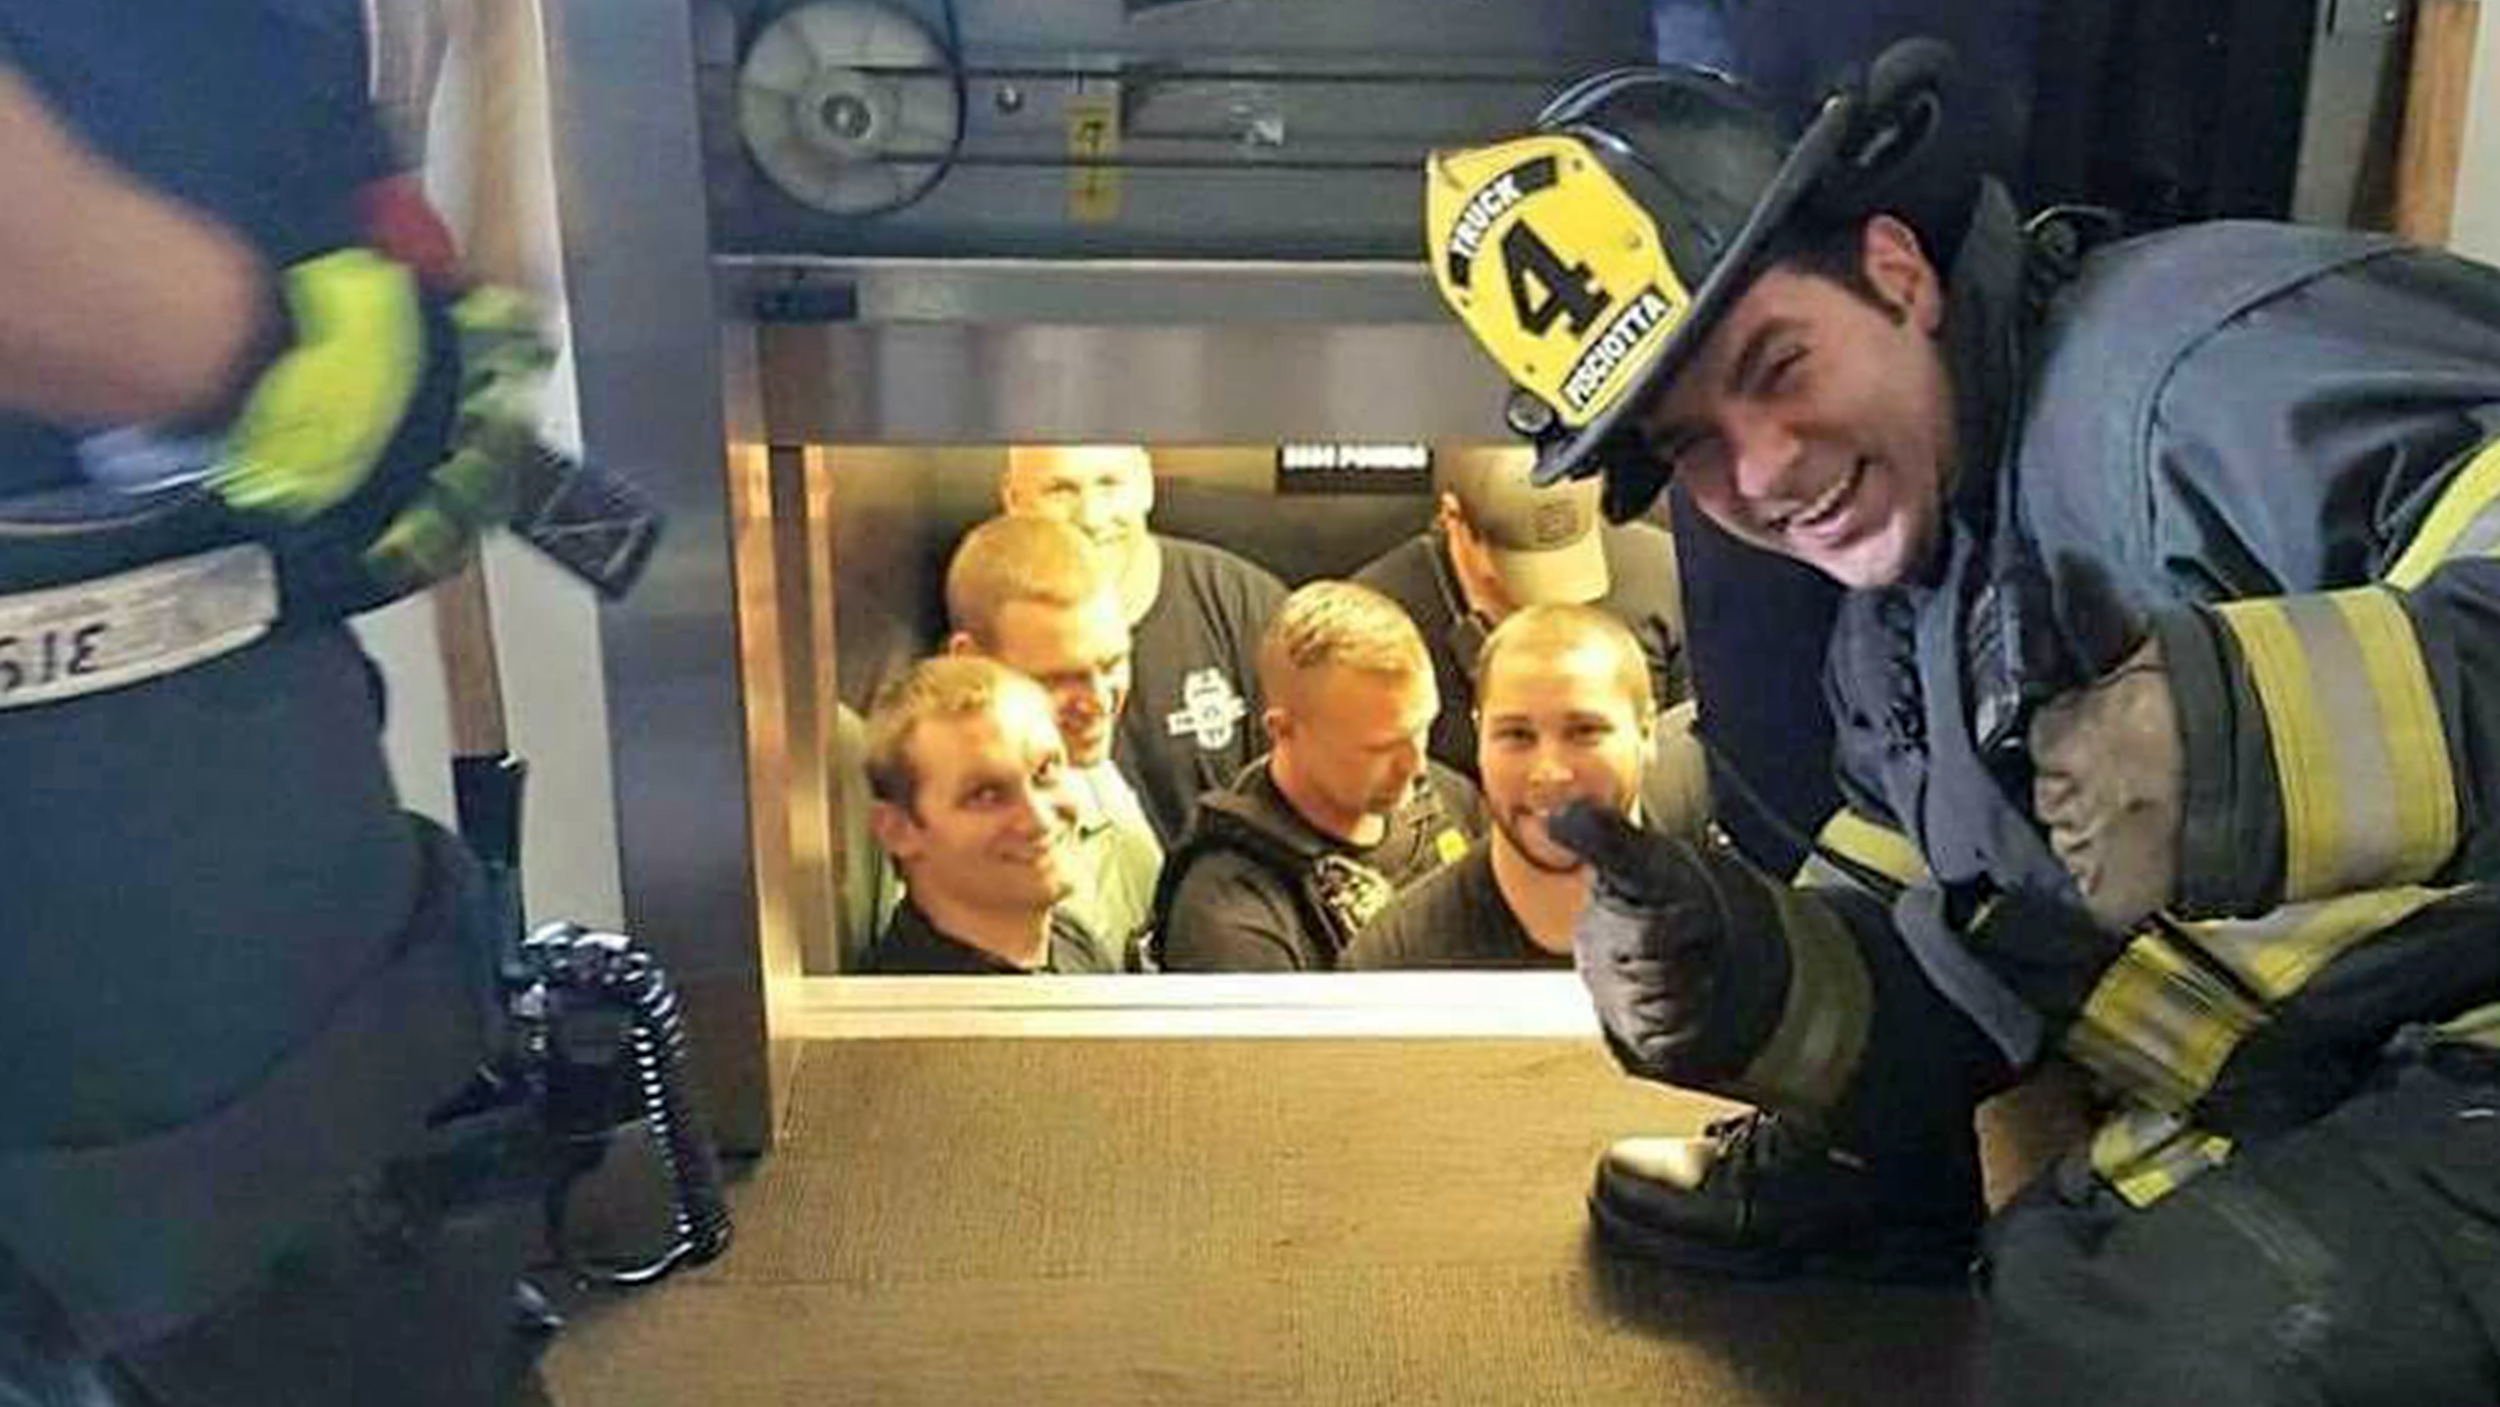 pictures What Firefighters Did After Saving Man Having Heart Attack Will Fill You with Joy